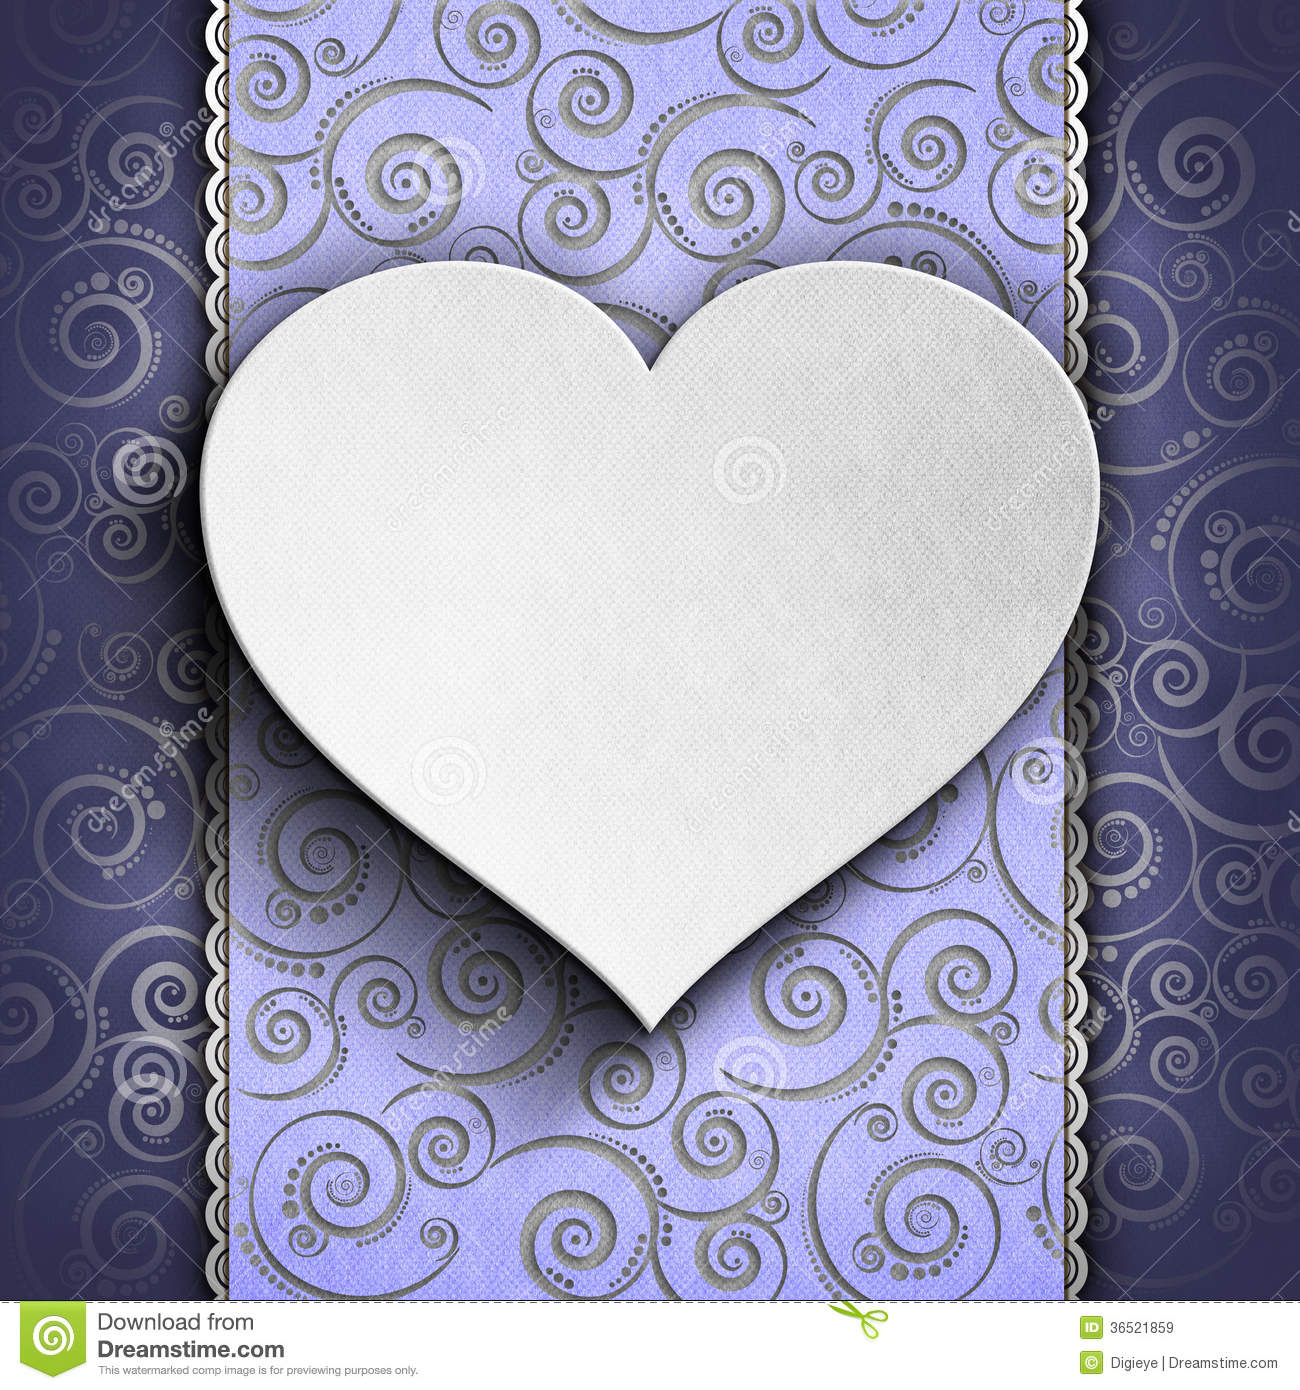 Valentine s Day background - Greeting card template